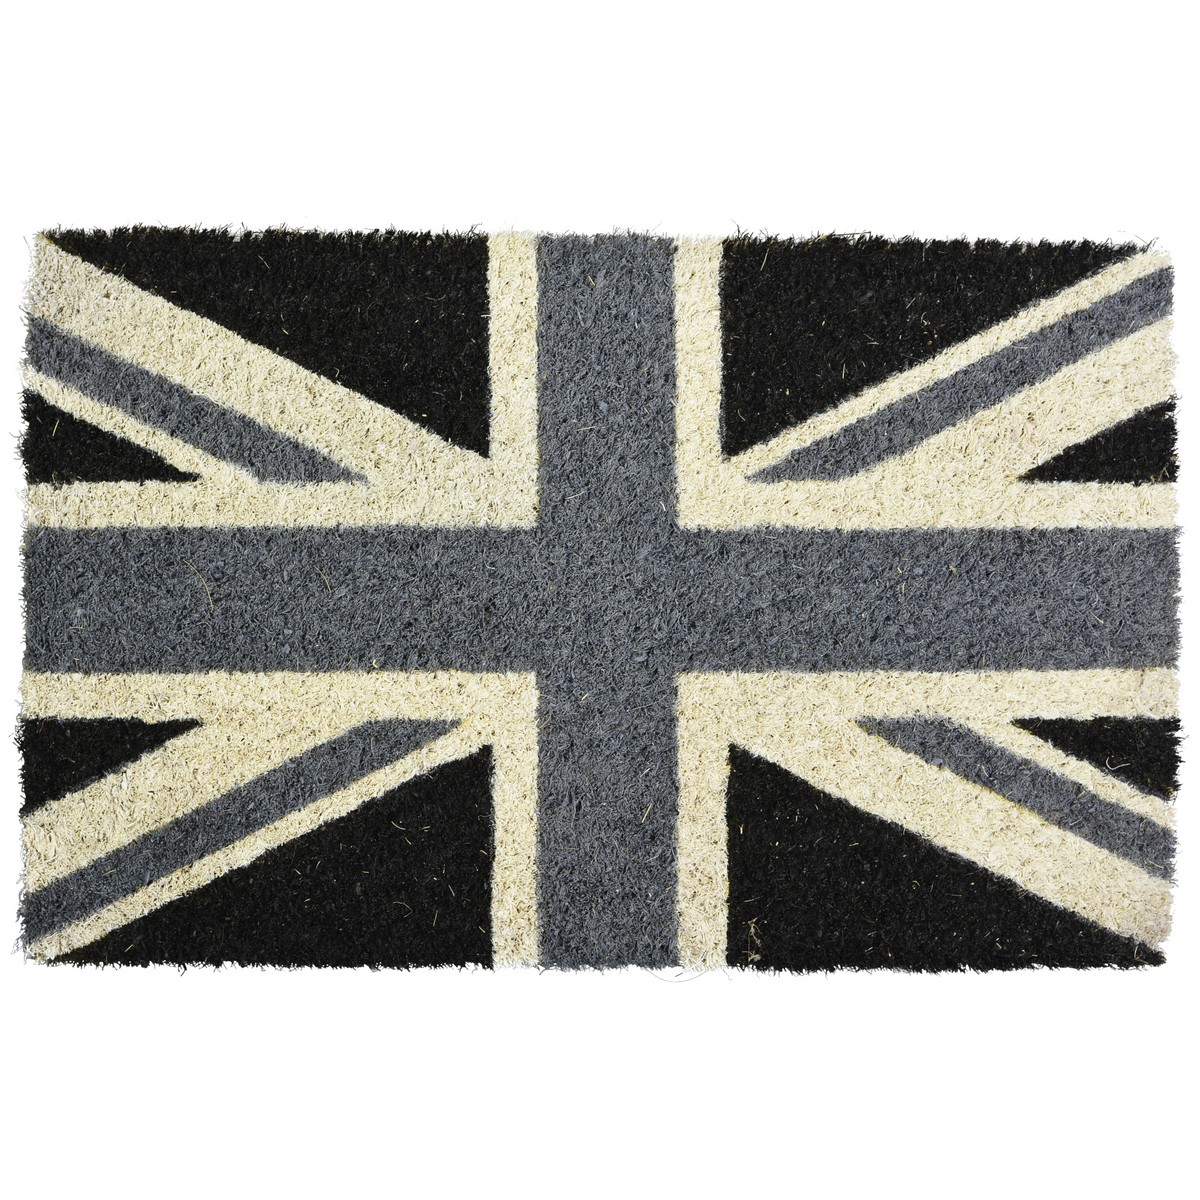 """<title>ガーデニング用品 ガーデン家具 玄関マット 手作り 材料 ハットトリック MINI COCO MAT S """"Union Jack"""" 1D-103 Monotone 01 取寄 デポー</title>"""